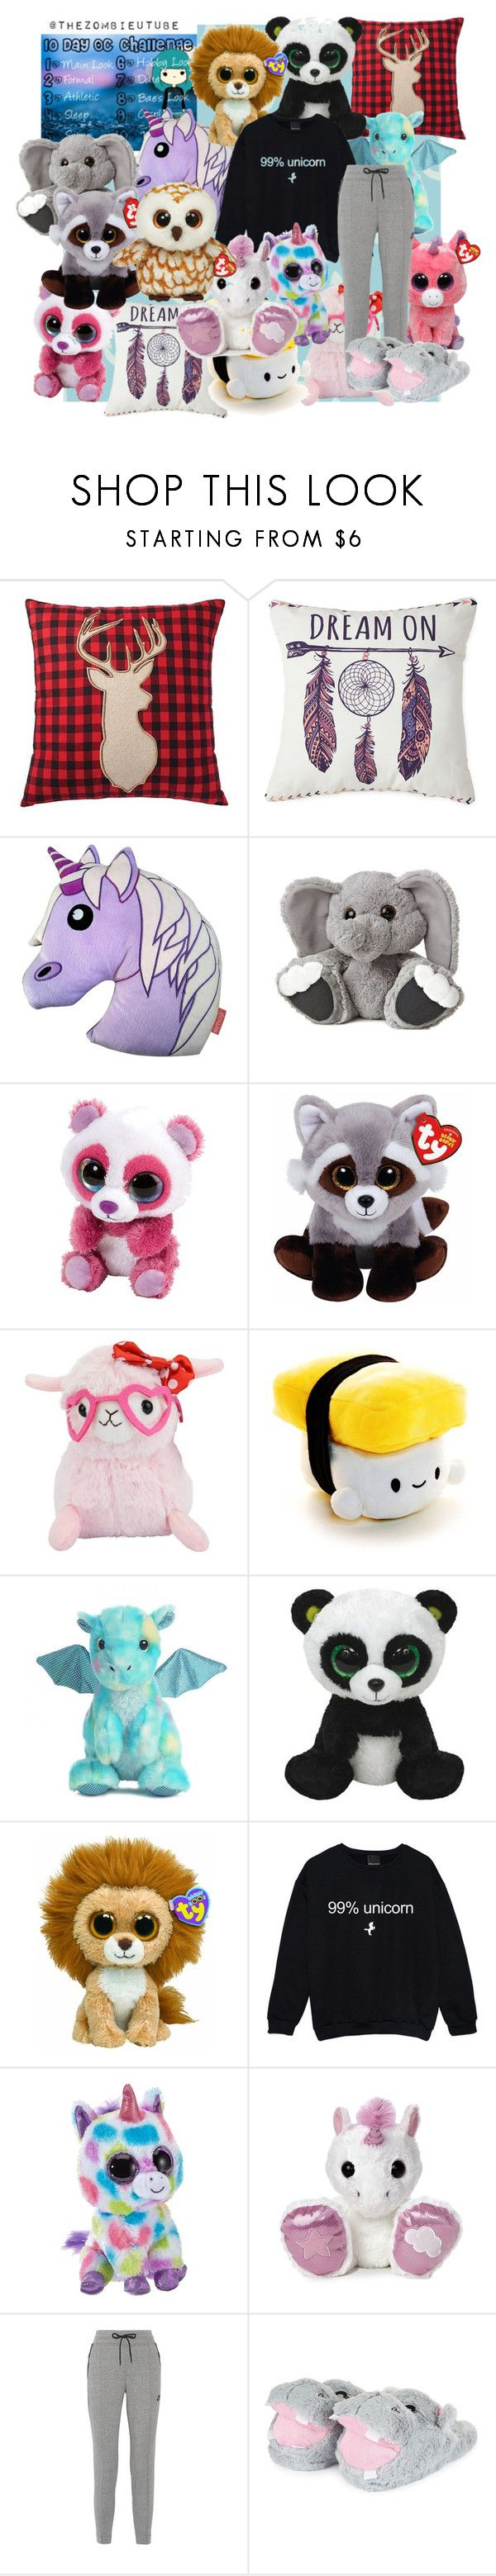 """""""~10 Day Challenge~"""" by micky-star ❤ liked on Polyvore featuring Home Decorators Collection, Home Expressions, Emoji, claire's, Aurora World and NIKE"""